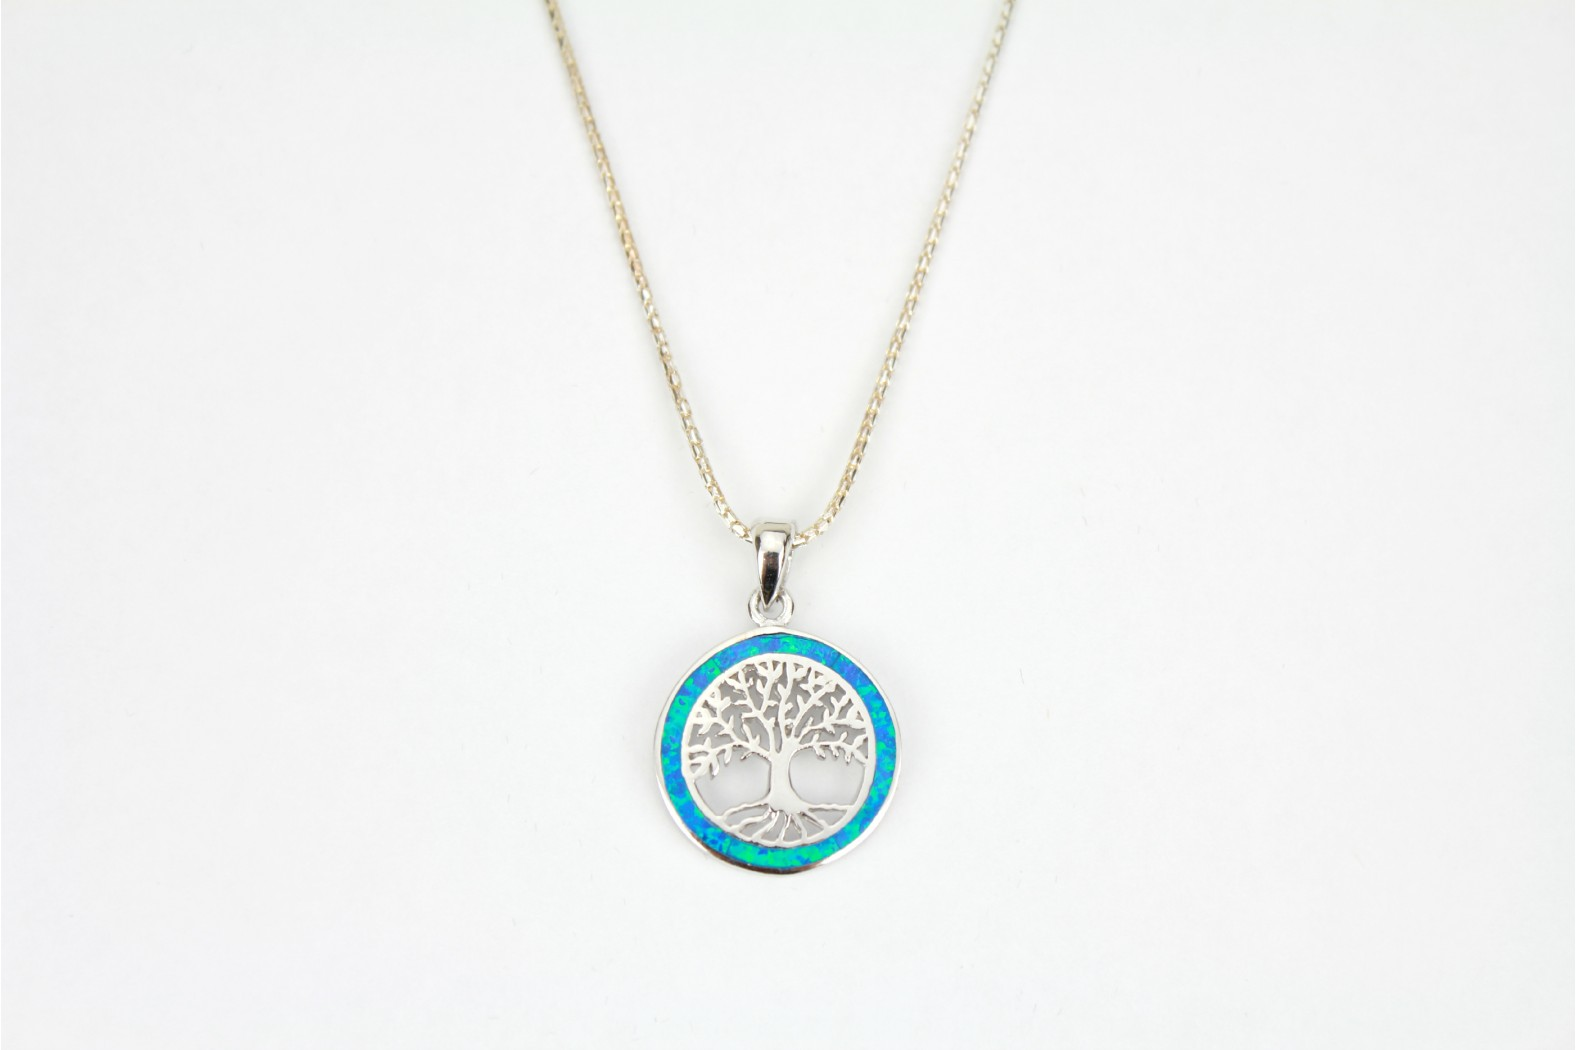 Silver Tree of Life embellished with Blue Opal Fire detailing on 18ins  45cm popcorn chain  DELIVERY 7 WORKING DAYS.